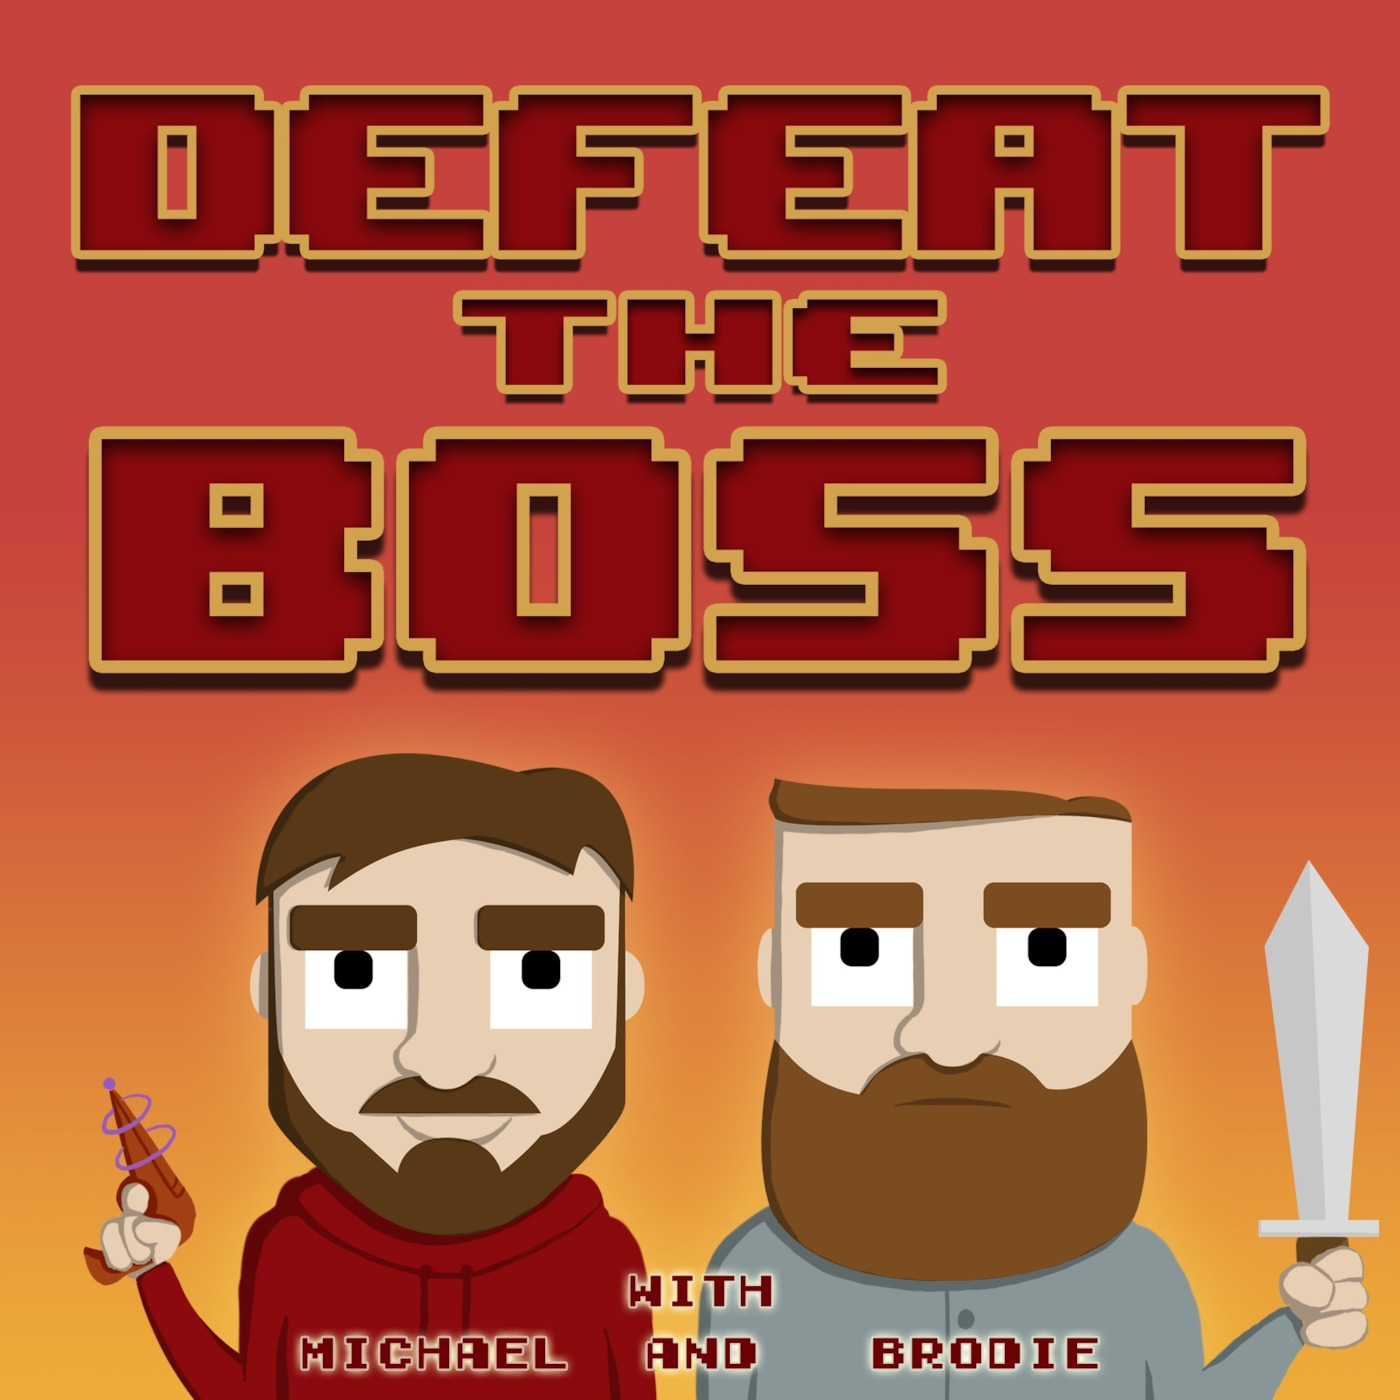 Defeat the Boss